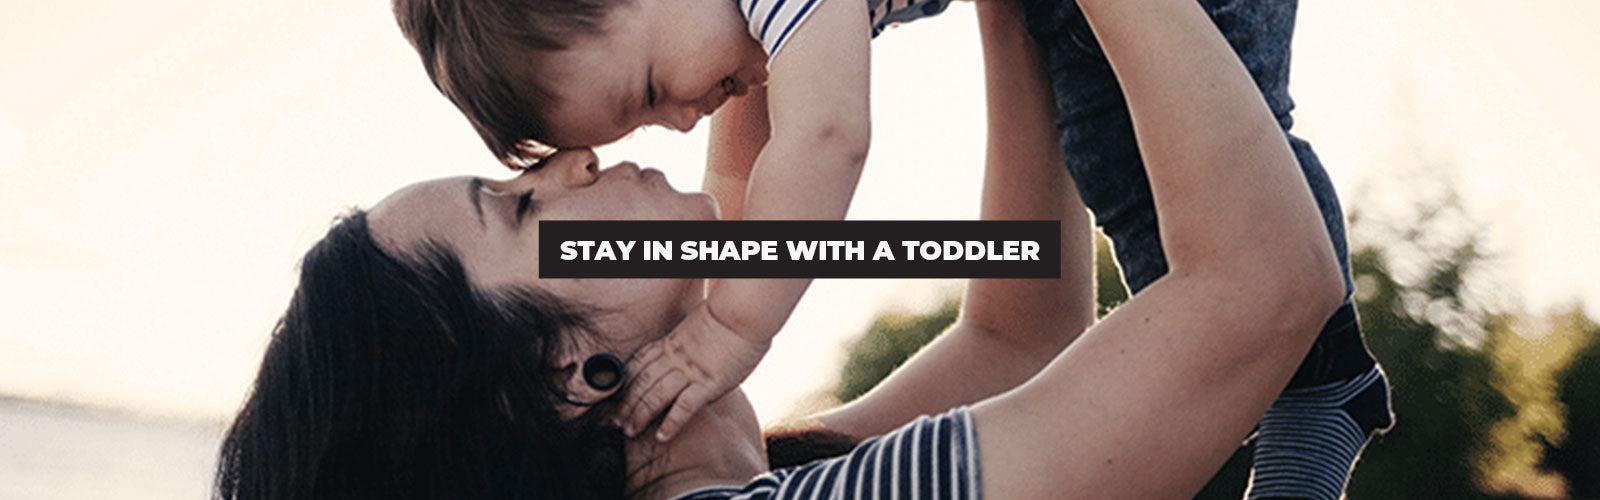 No Need to Have a Meltdown: Proven Ways to Get in Shape When You Have a Toddler